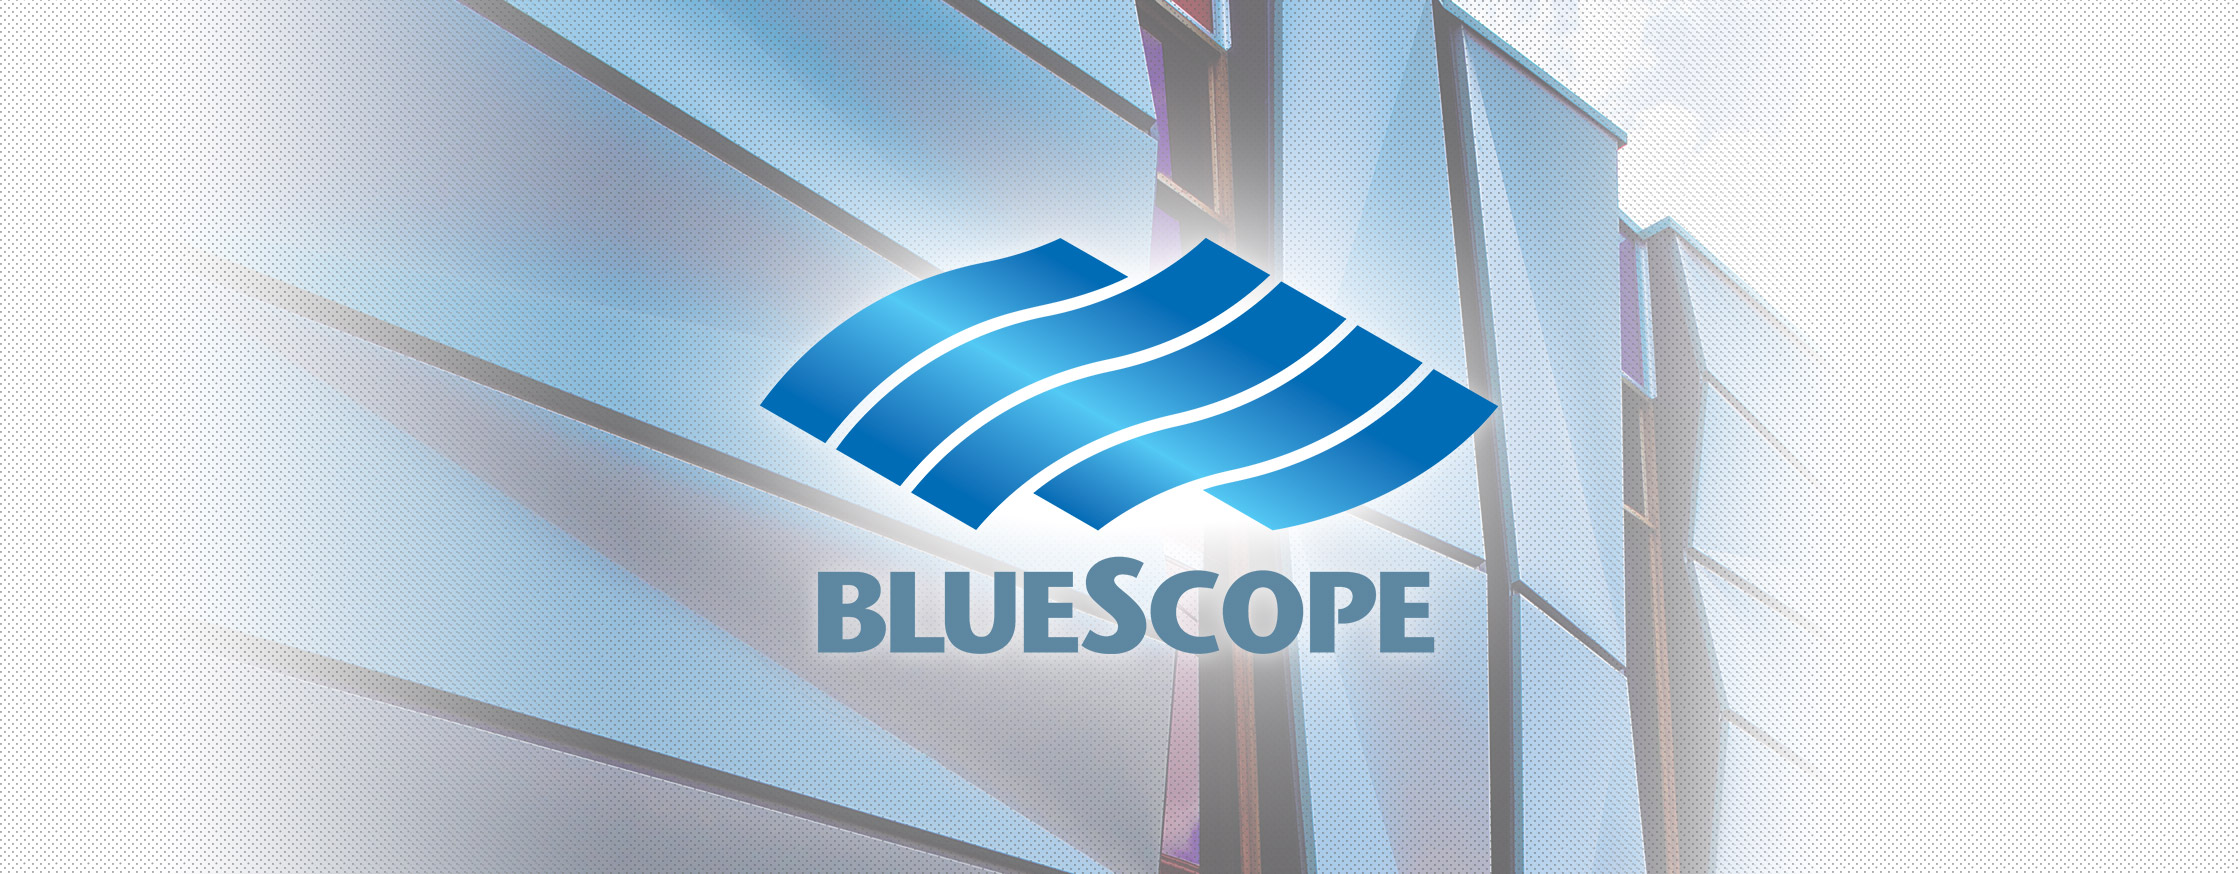 bluescope-slide.jpg